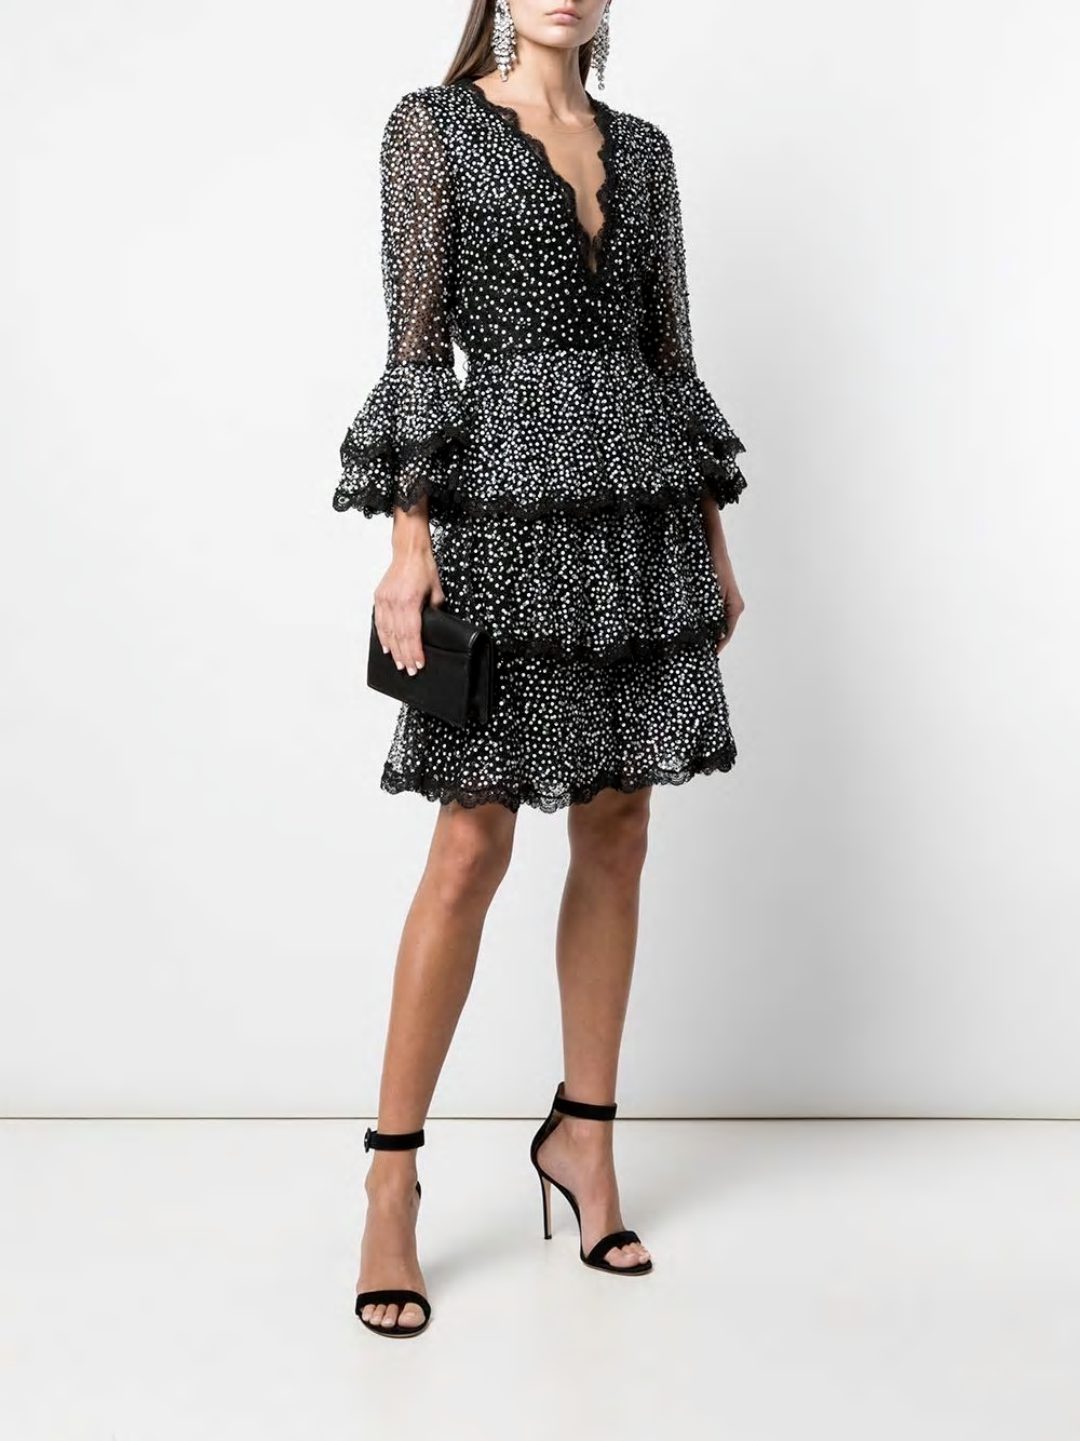 Bell Sleeve & Tiered Skirt Cocktail Dress